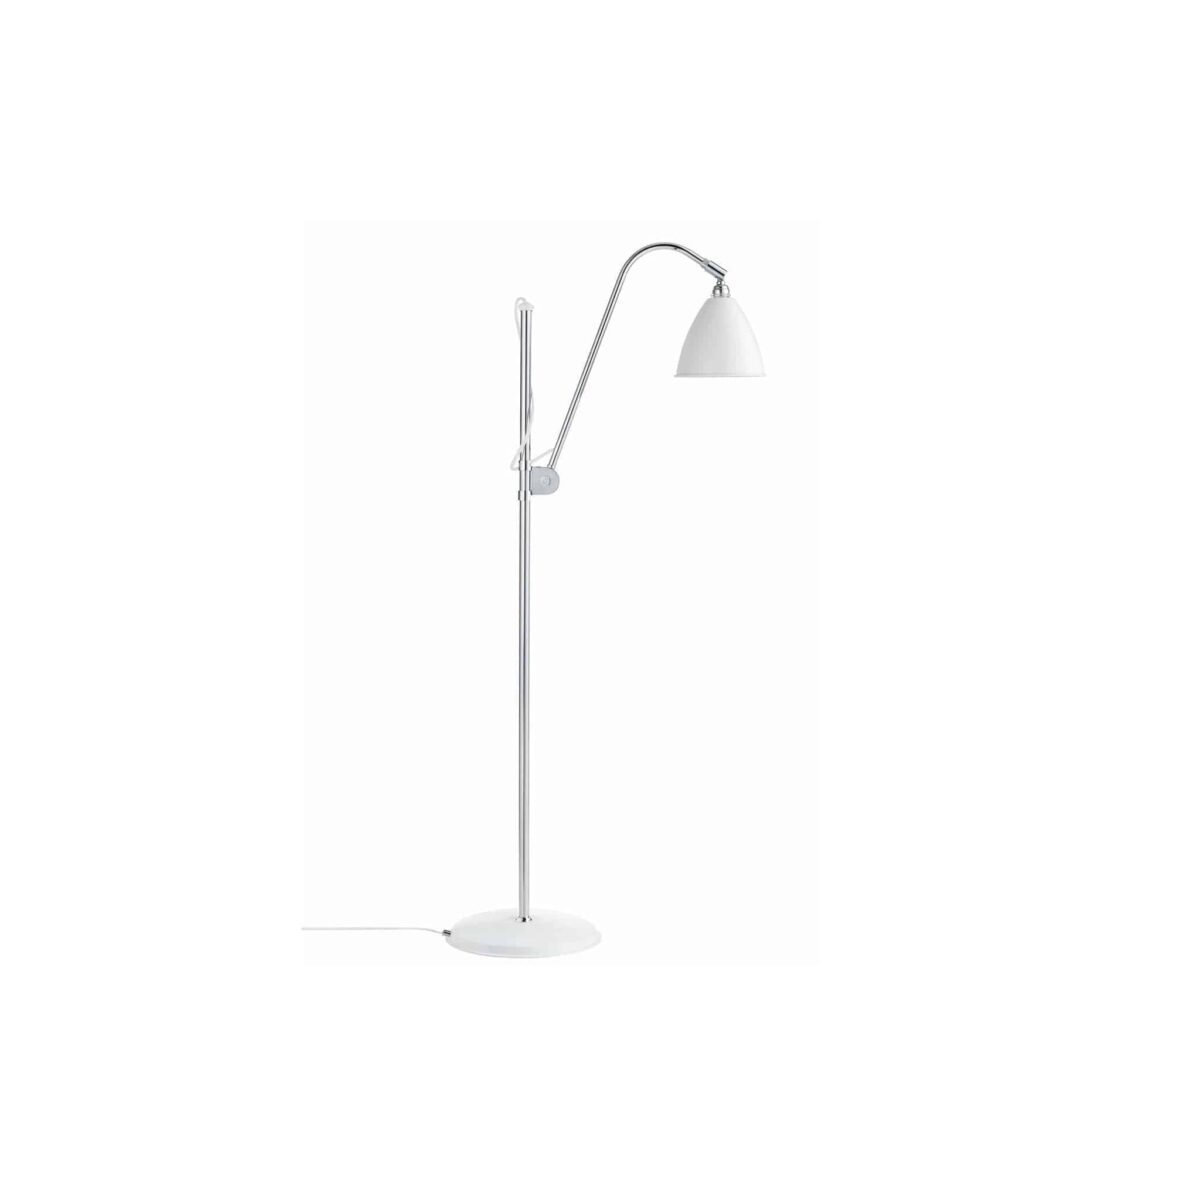 gubi-bestlite-floor-lamp-BL3-S-matt-white-chrome-001